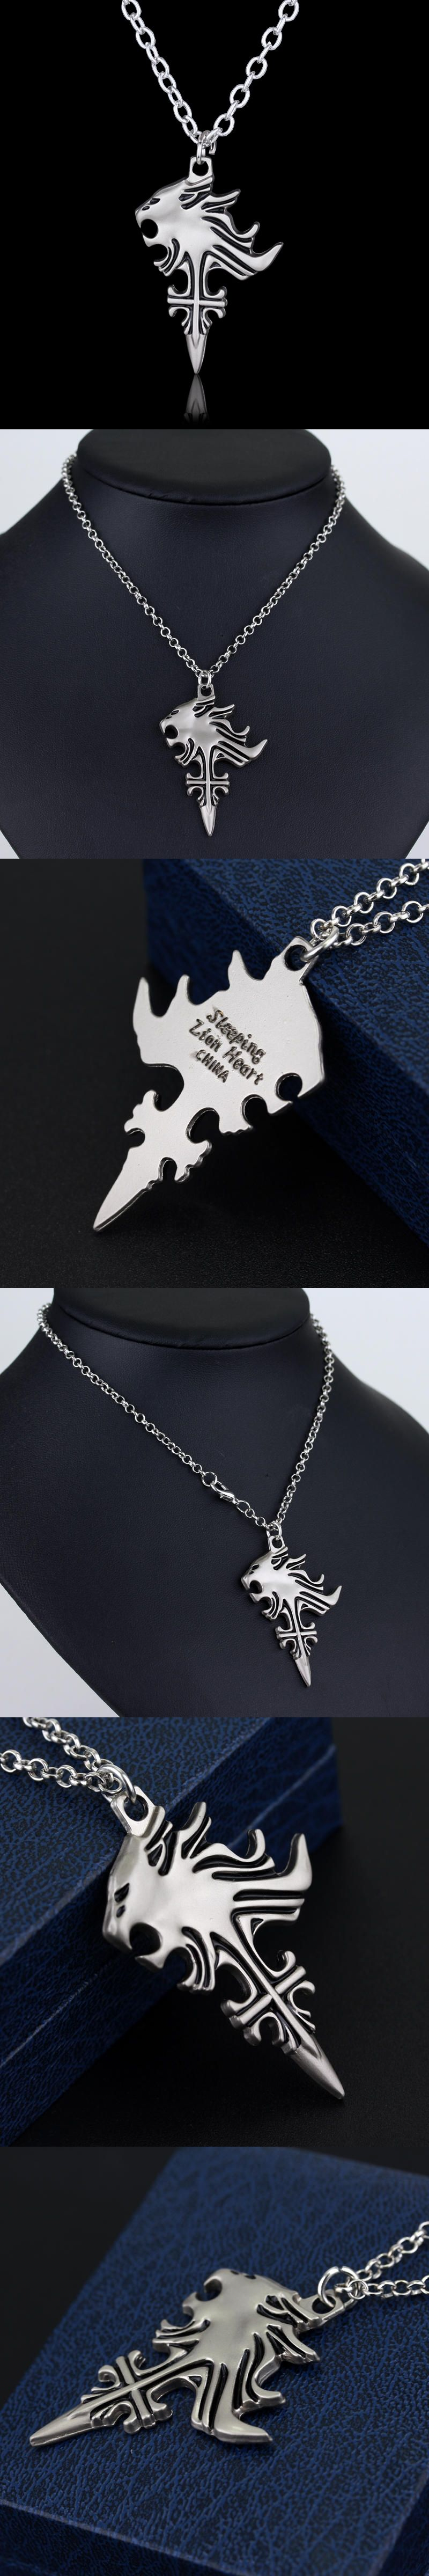 Newest anime final fantasy viii 8 griever squall leonhart lion head newest anime final fantasy viii 8 griever squall leonhart lion head necklace cosplay necklaces pendants mozeypictures Image collections